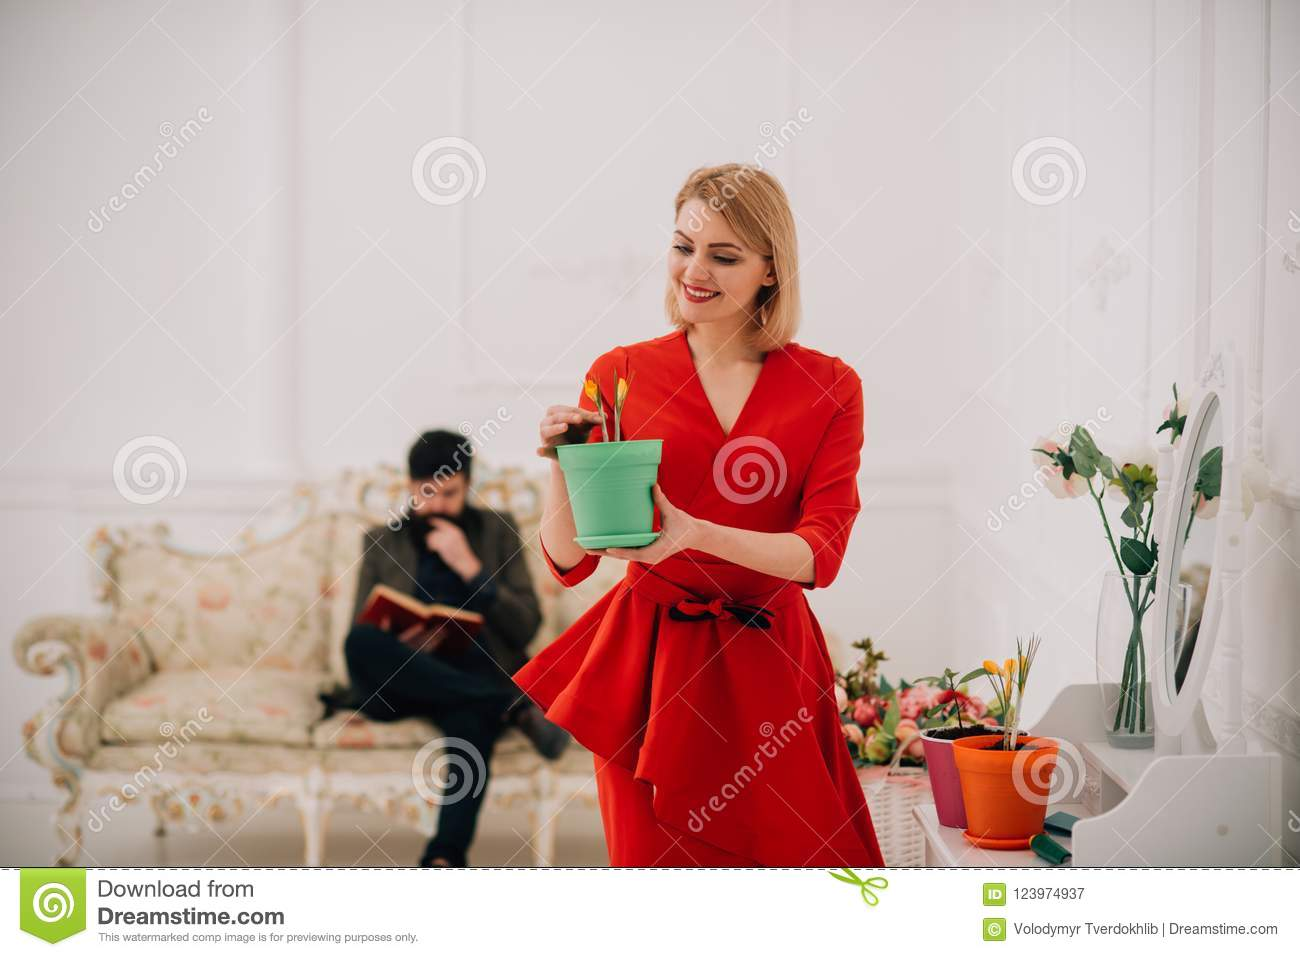 spring concept. sensual woman hold spring flower while man reading